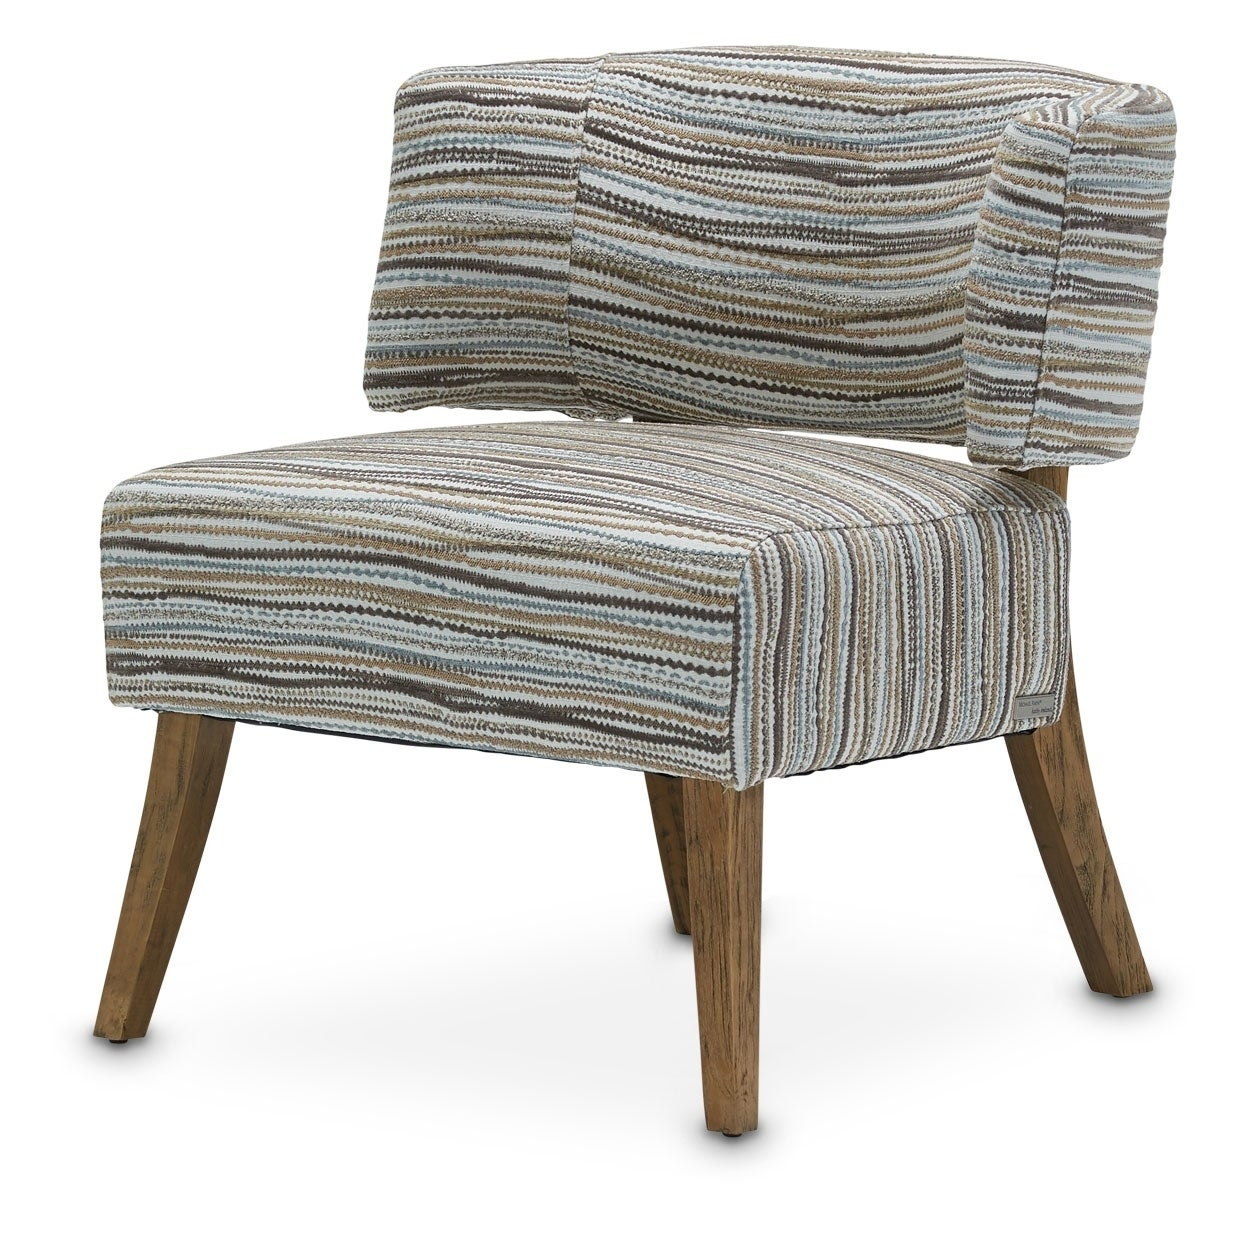 Half Moon Waves Curved Back Chair by Kathy Ireland